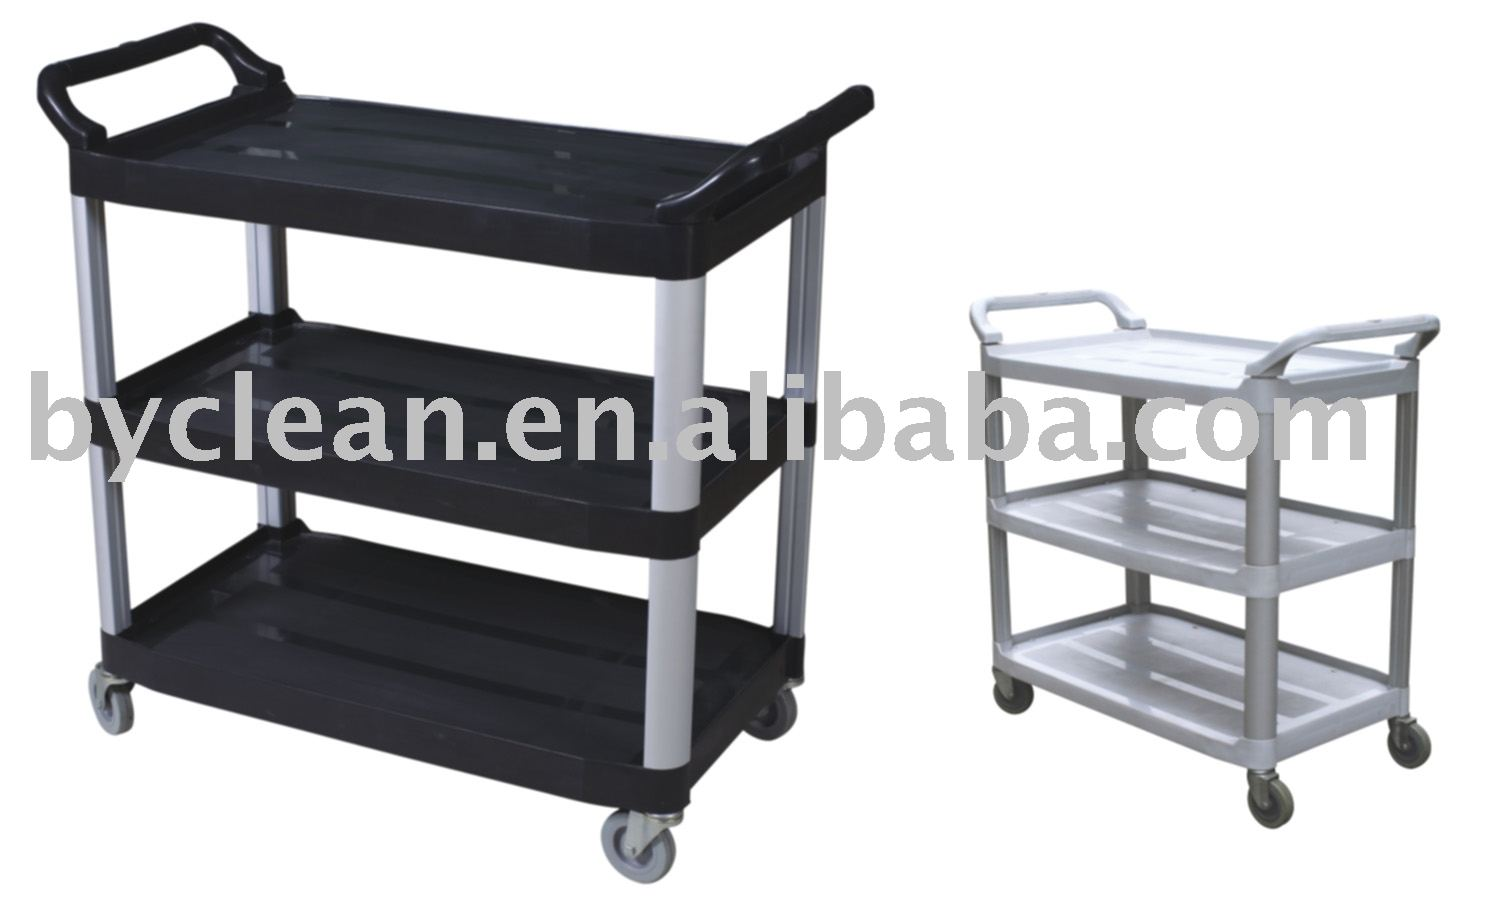 Multi-Functional 3 Levels Dining Serving Cart With Wheels